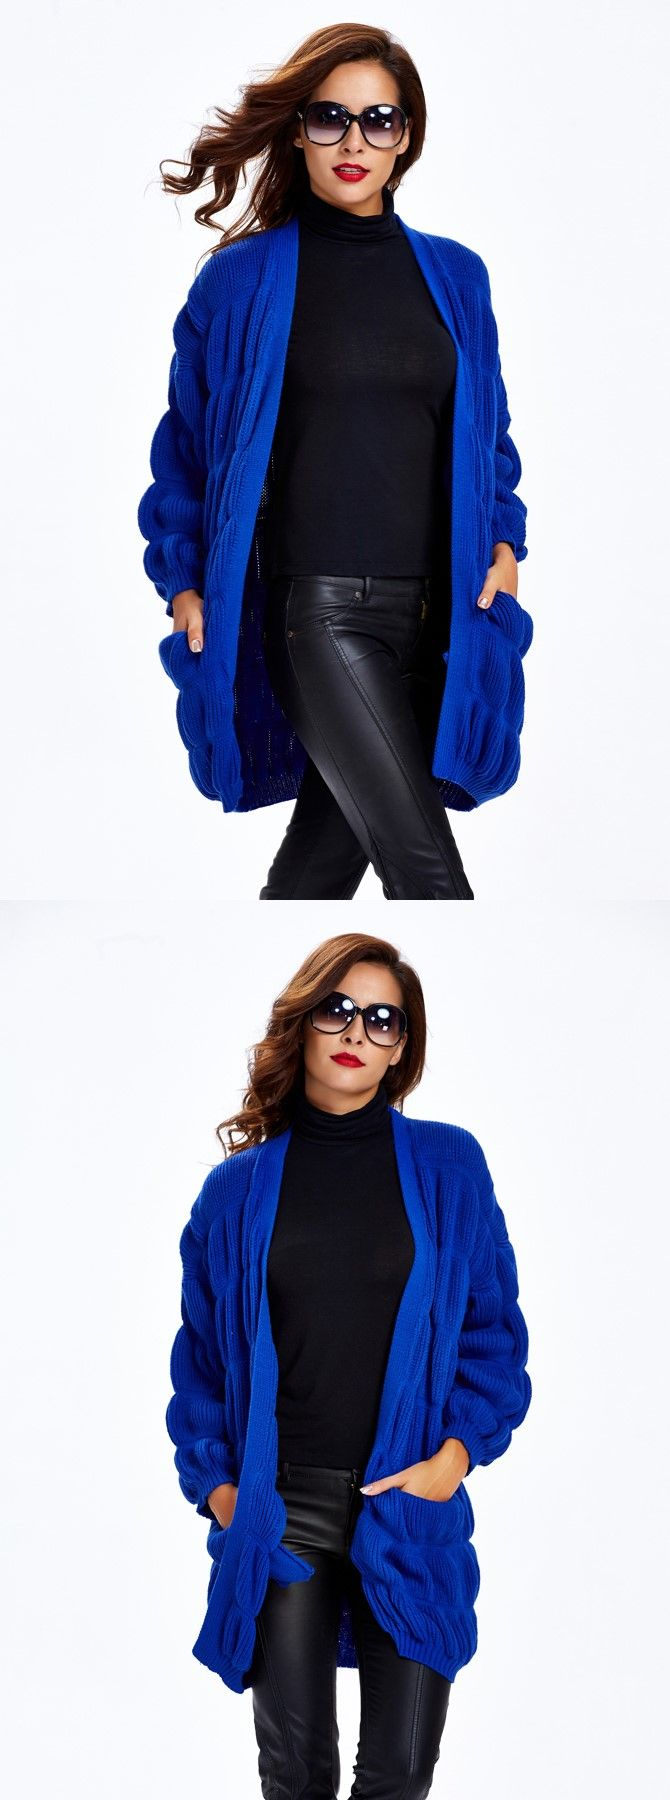 Black Knitting Thick Long Women's Sweater Coat | Royal blue ...